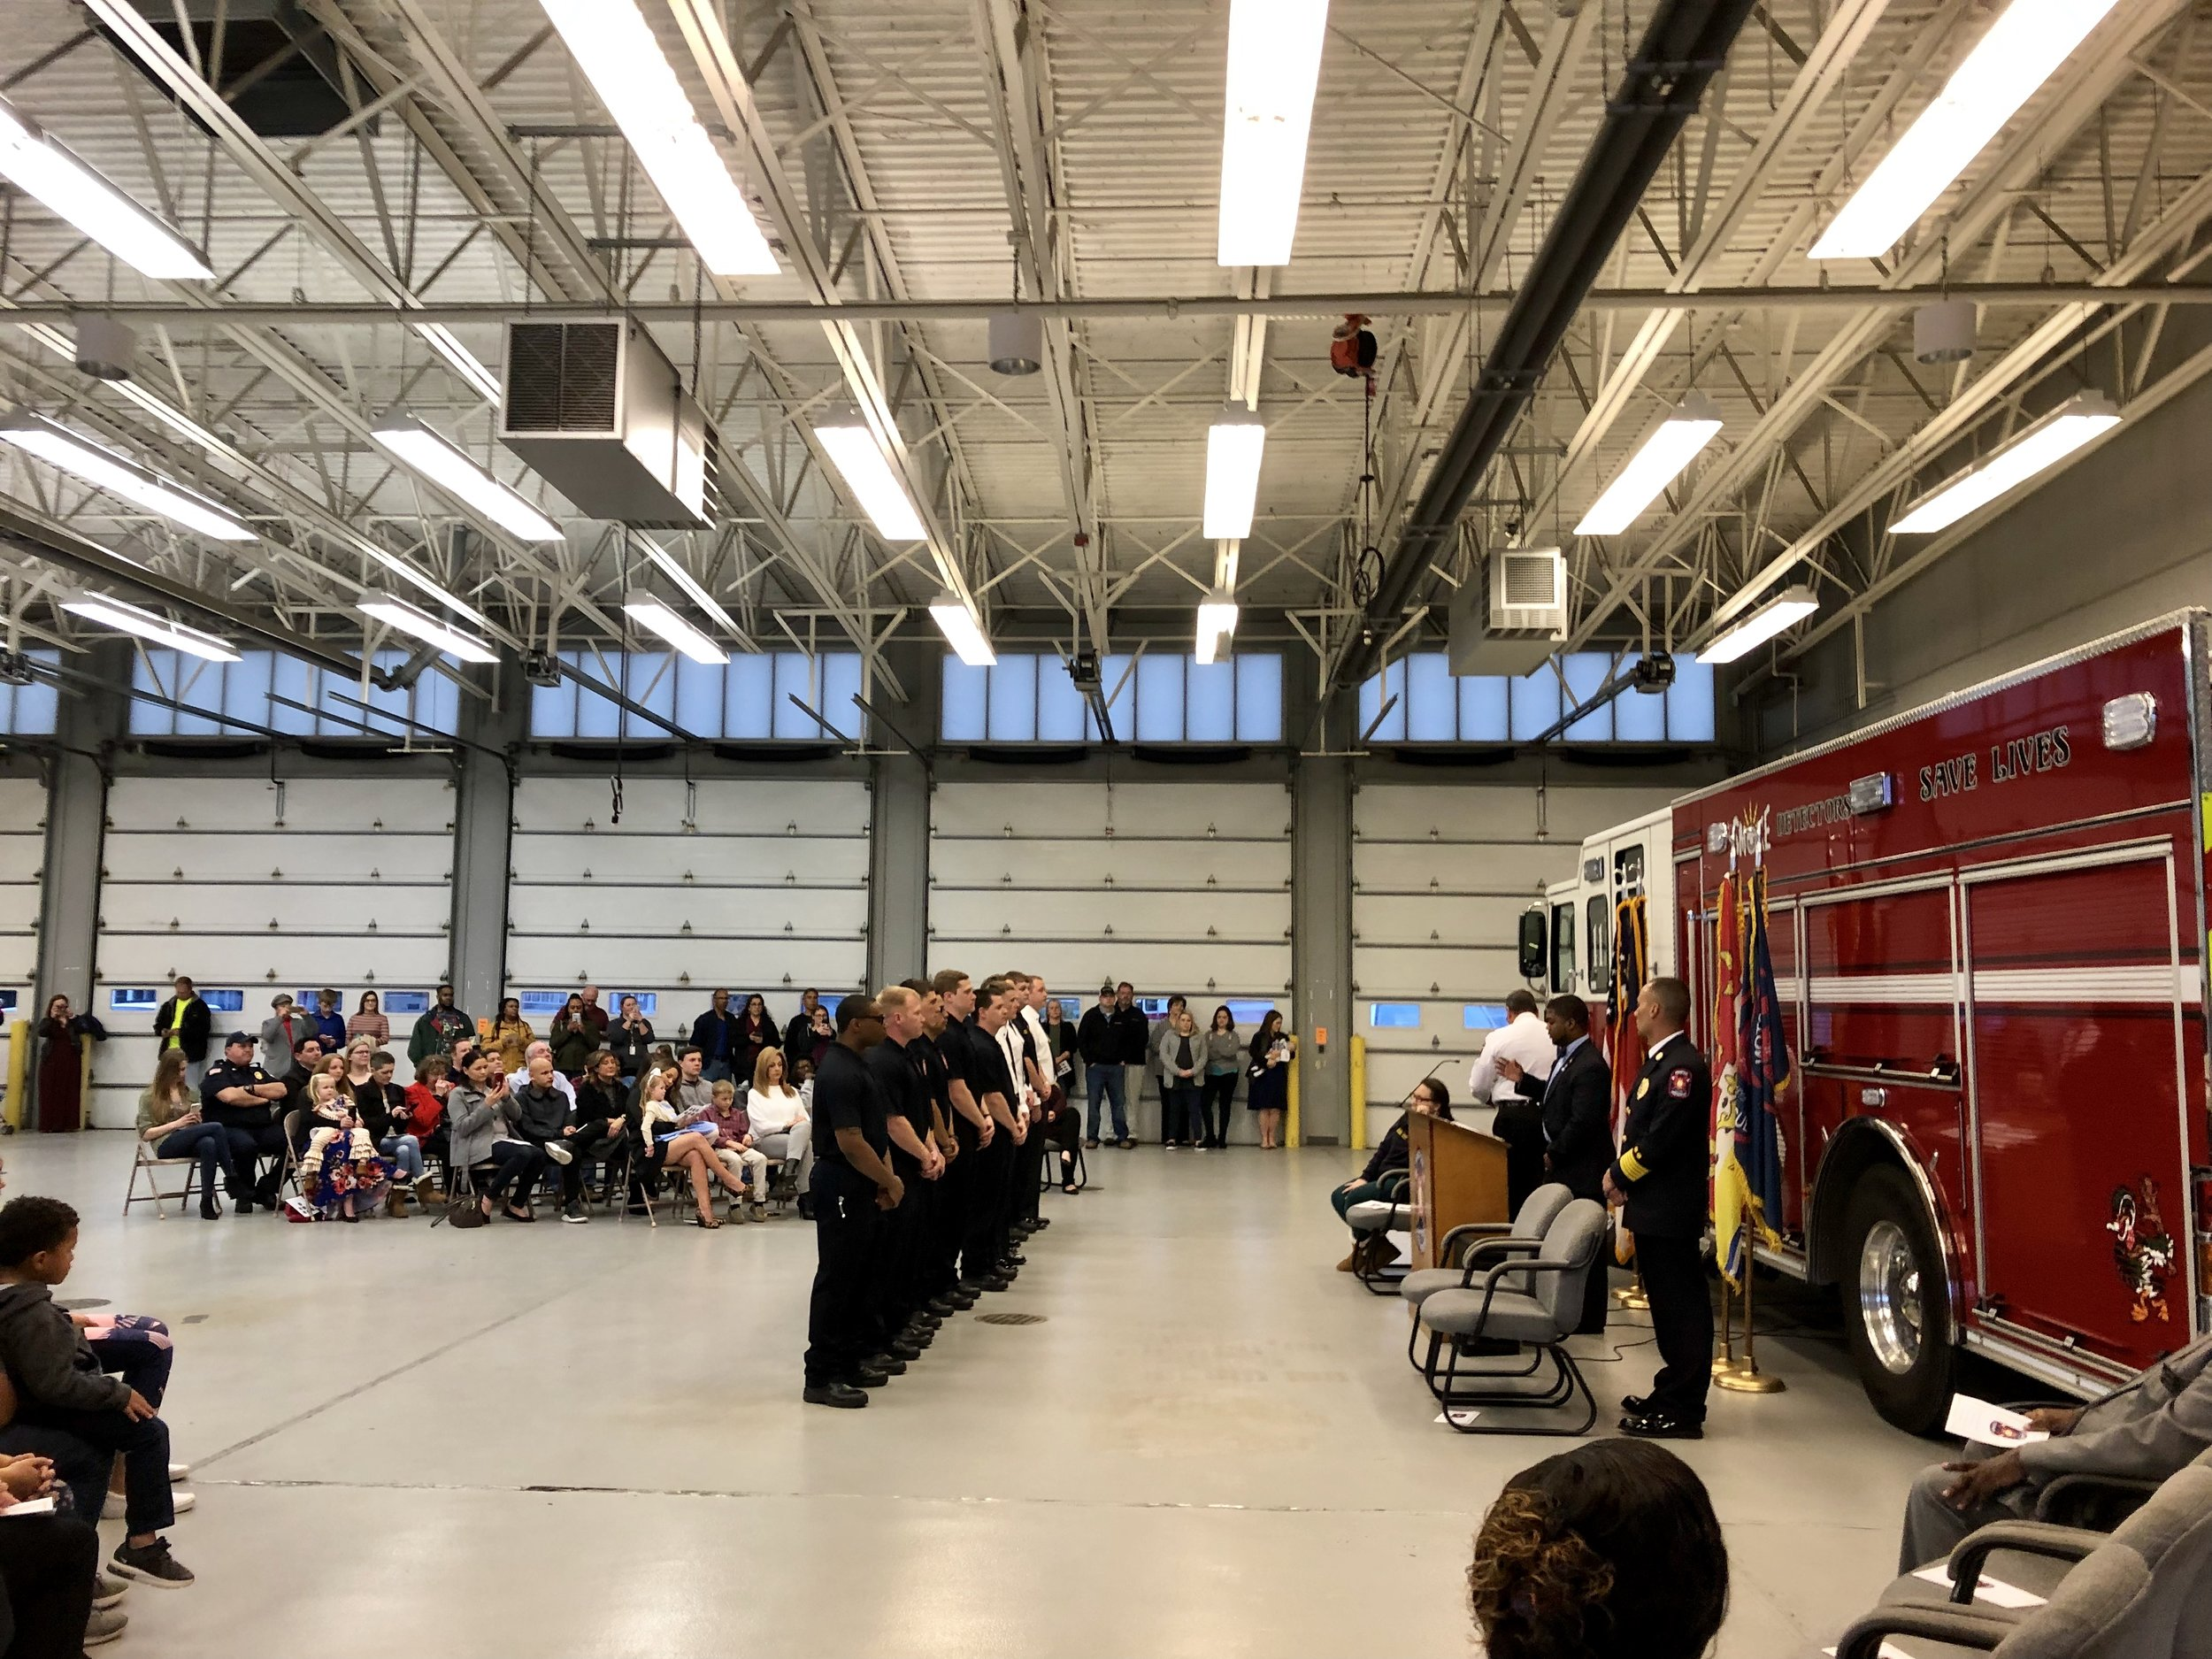 Newly-hired fire fighters are sworn in to the department by Mayor Don Hardy as Chief Locklear looks on. Photo by Catherine Hardee / Neuse News